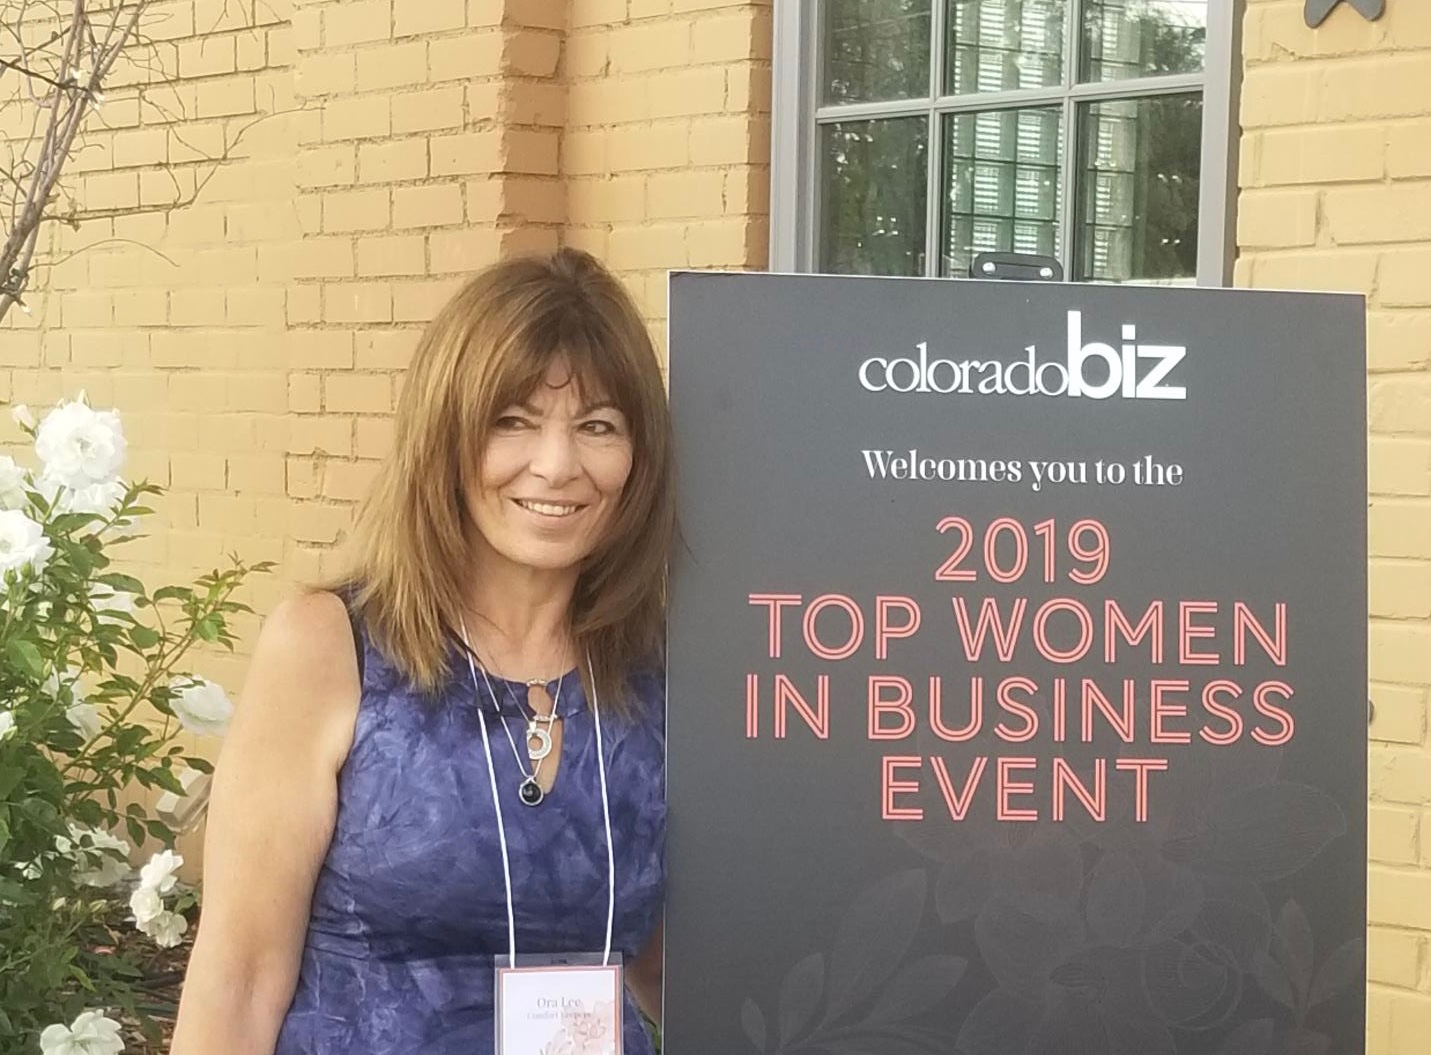 Comfort Keepers Owner standing next to a sign that says 2019 Top Women in Business Event